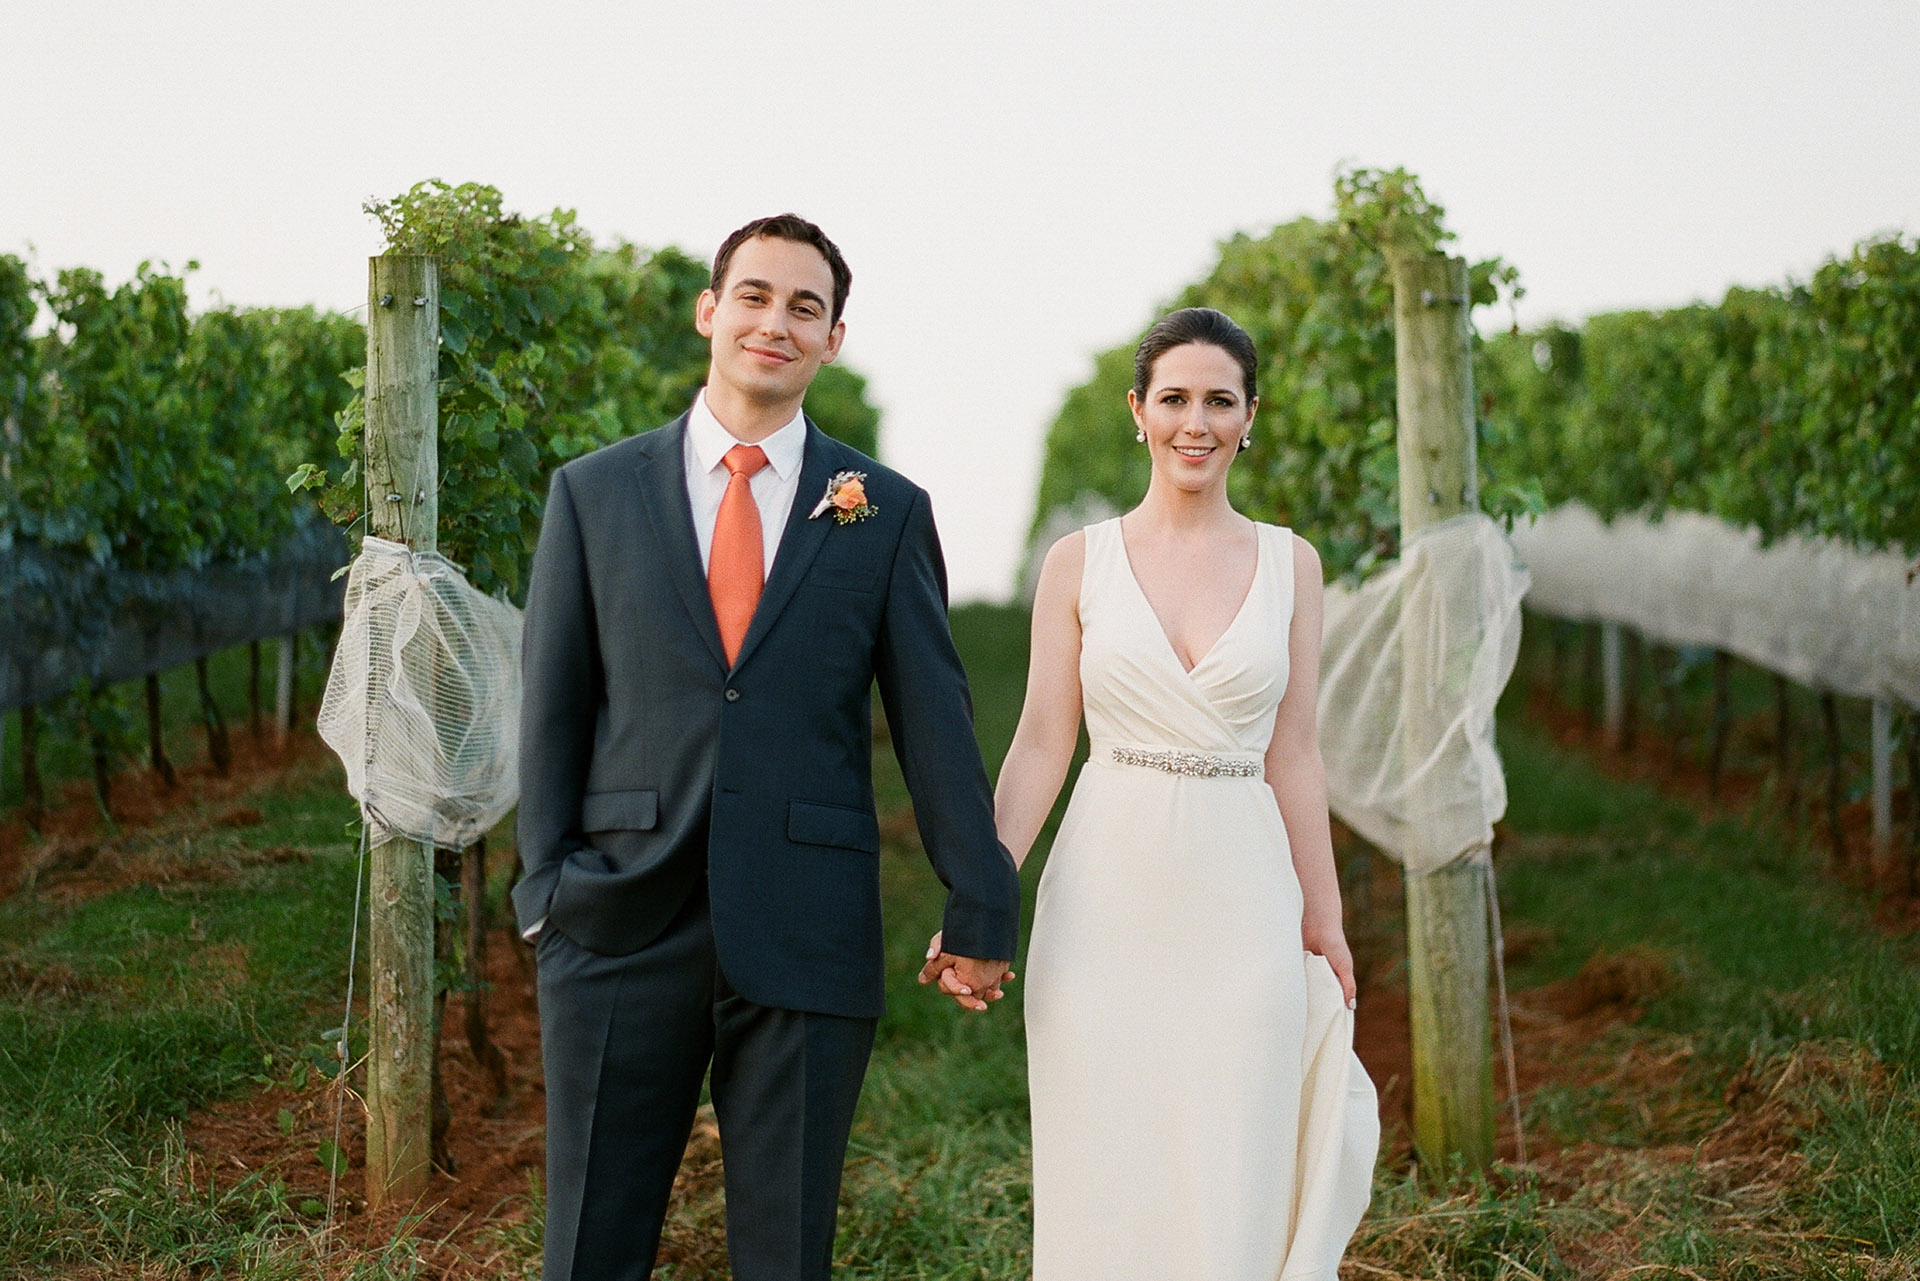 7 Wine Regions For Your Destination Wedding photo